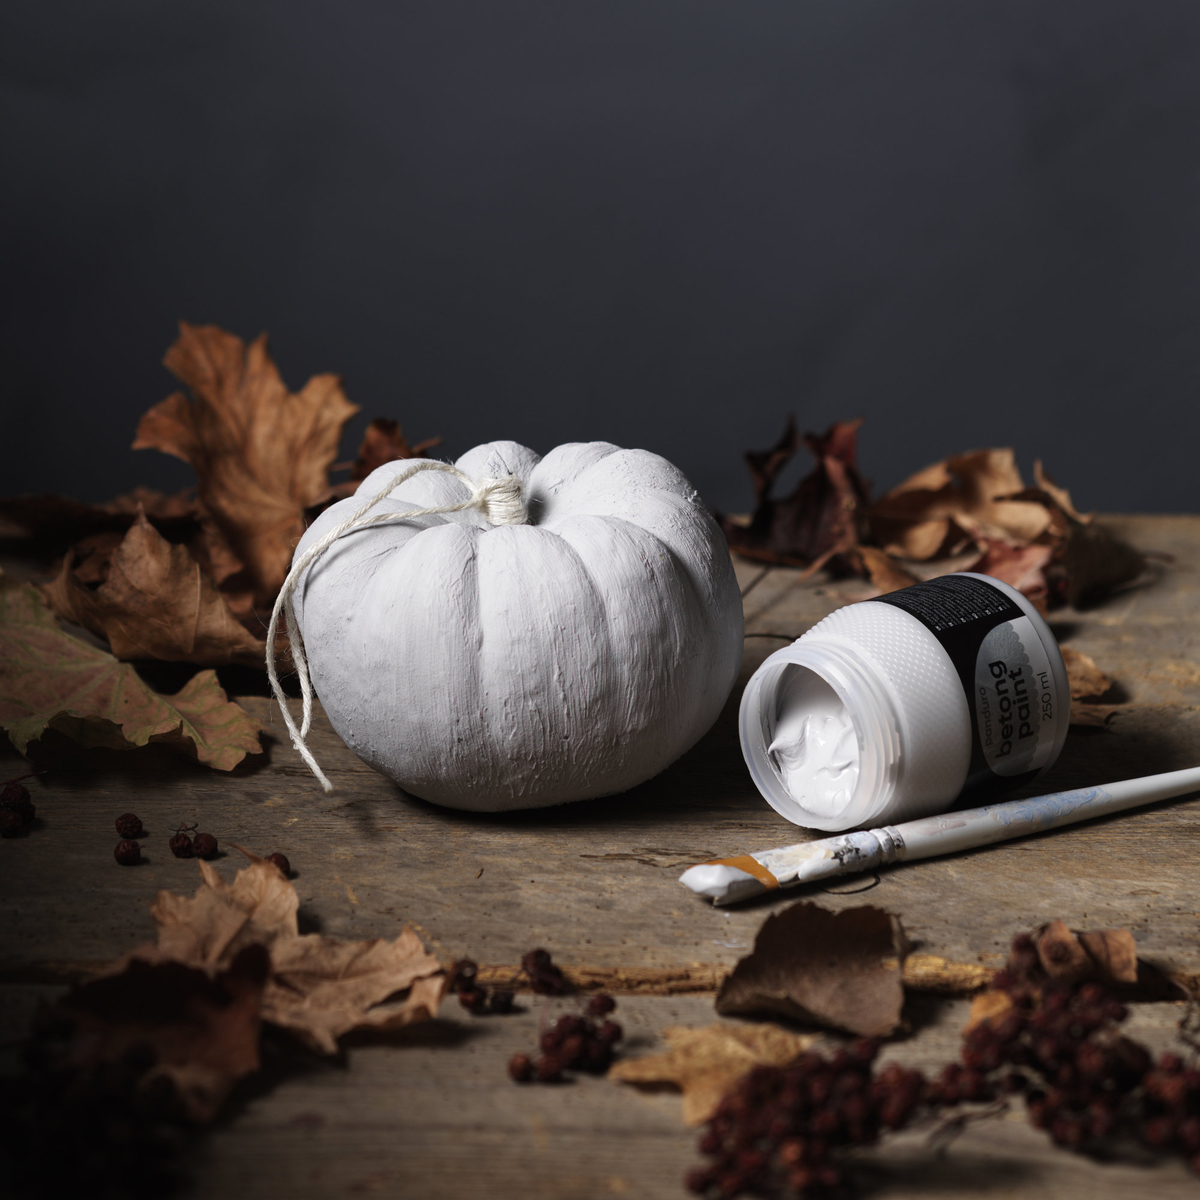 Make a concrete pumpkin